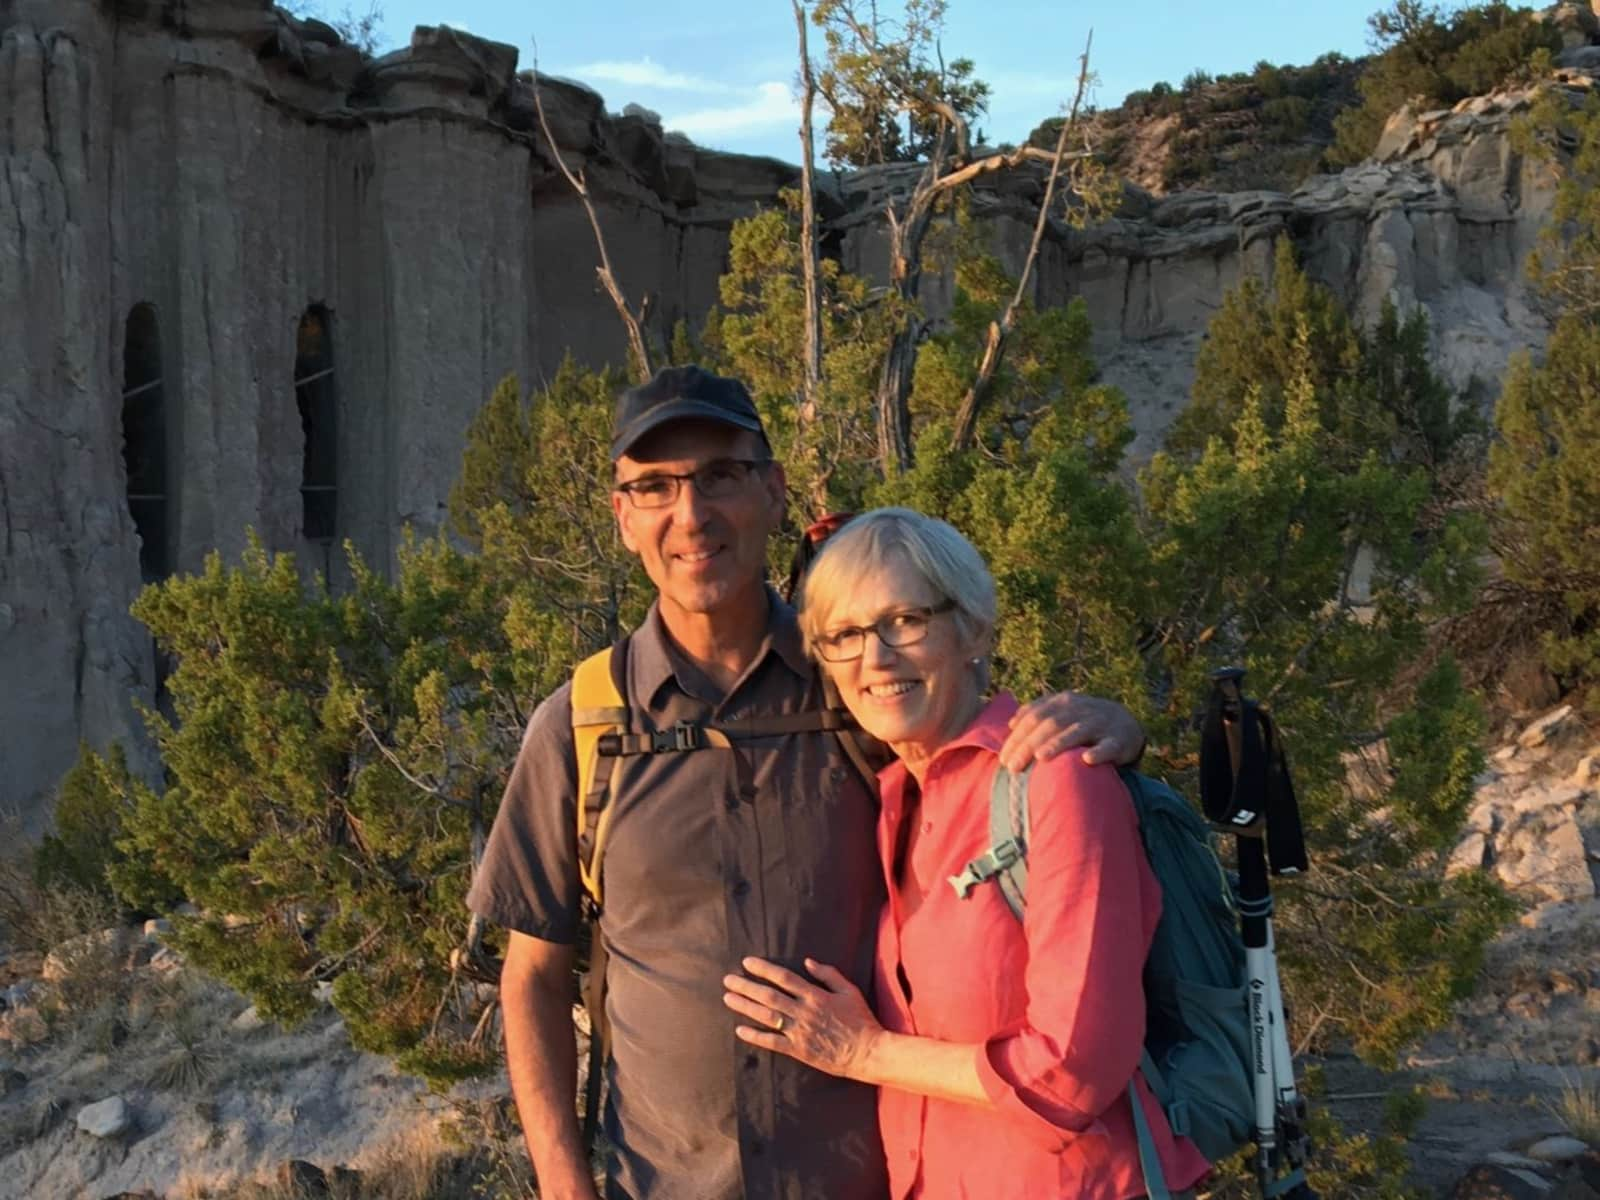 Phil & Diane from Santa Fe, New Mexico, United States